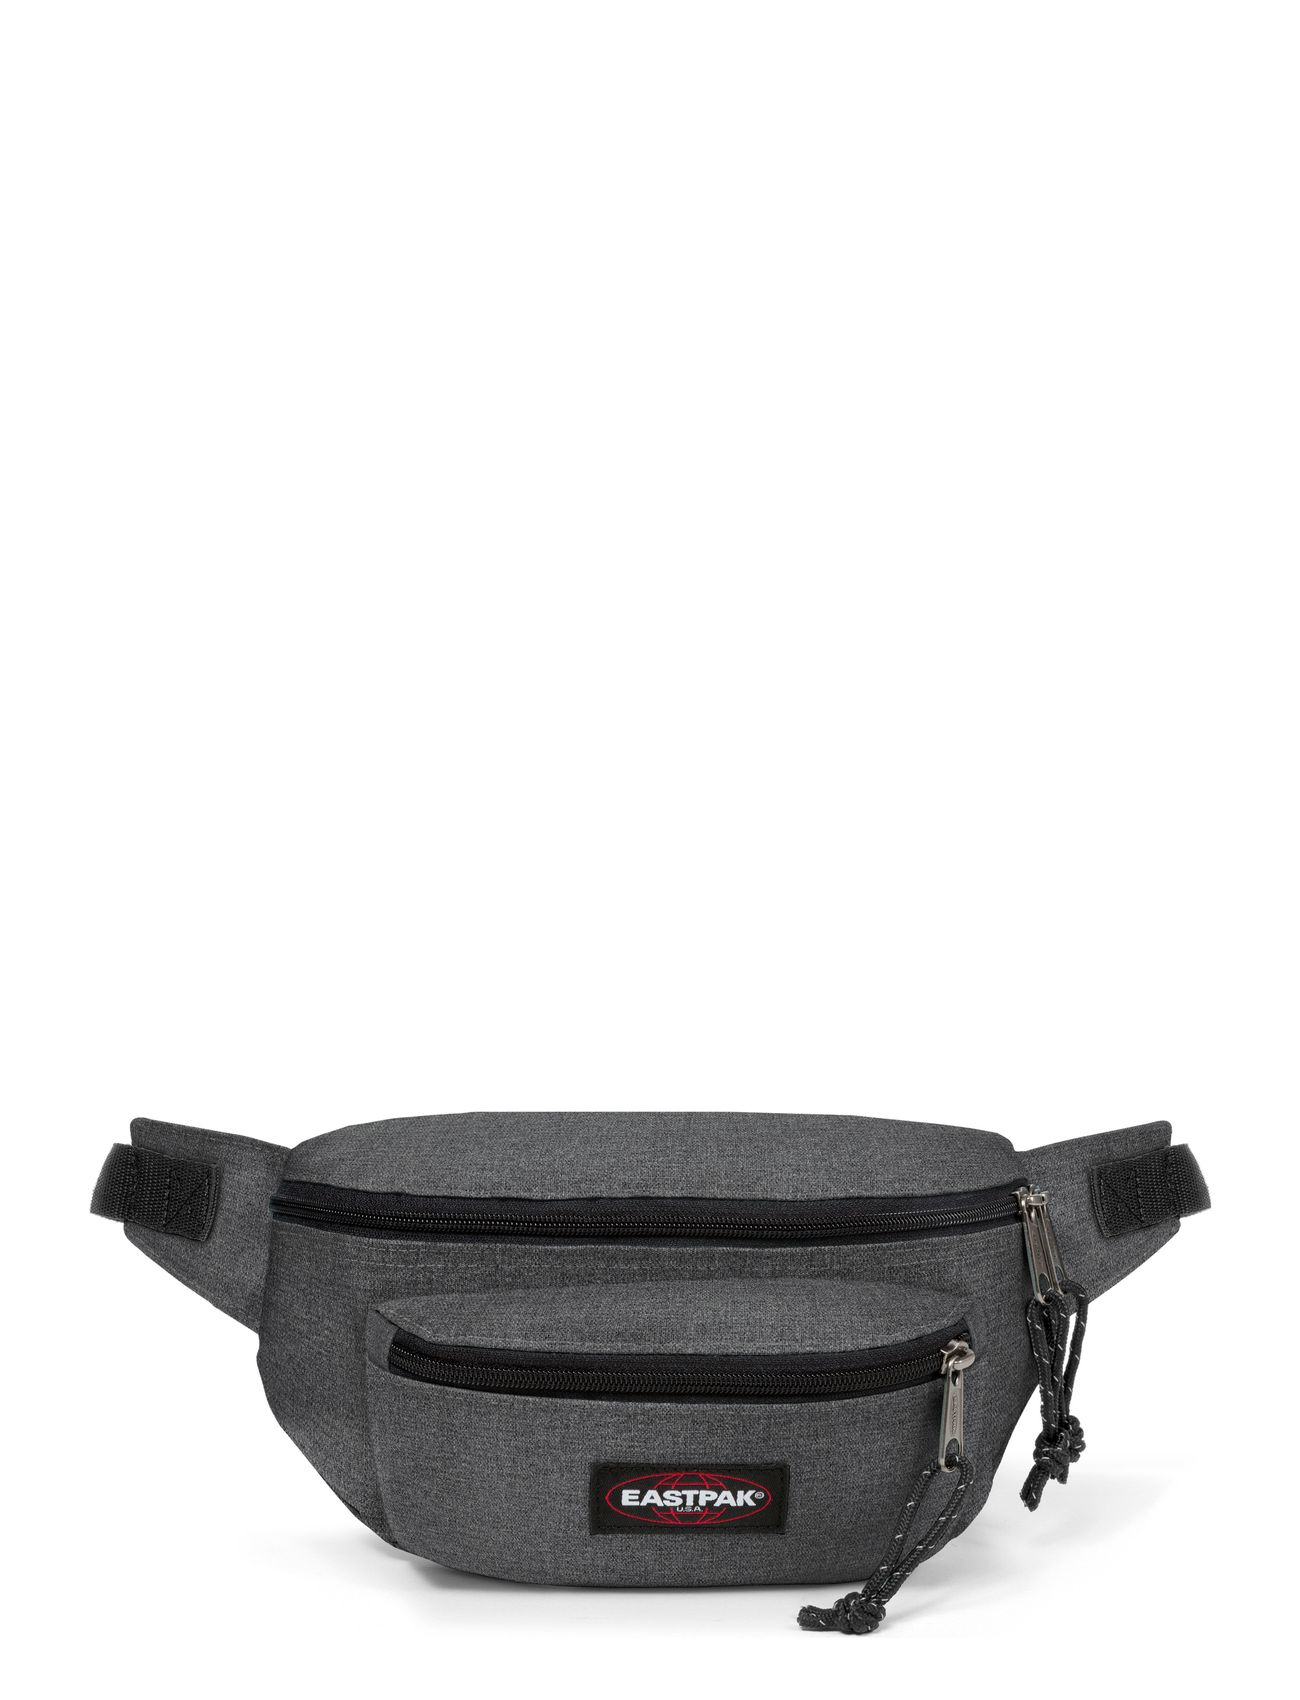 Eastpak Doggy Bag - BLACK DENIM